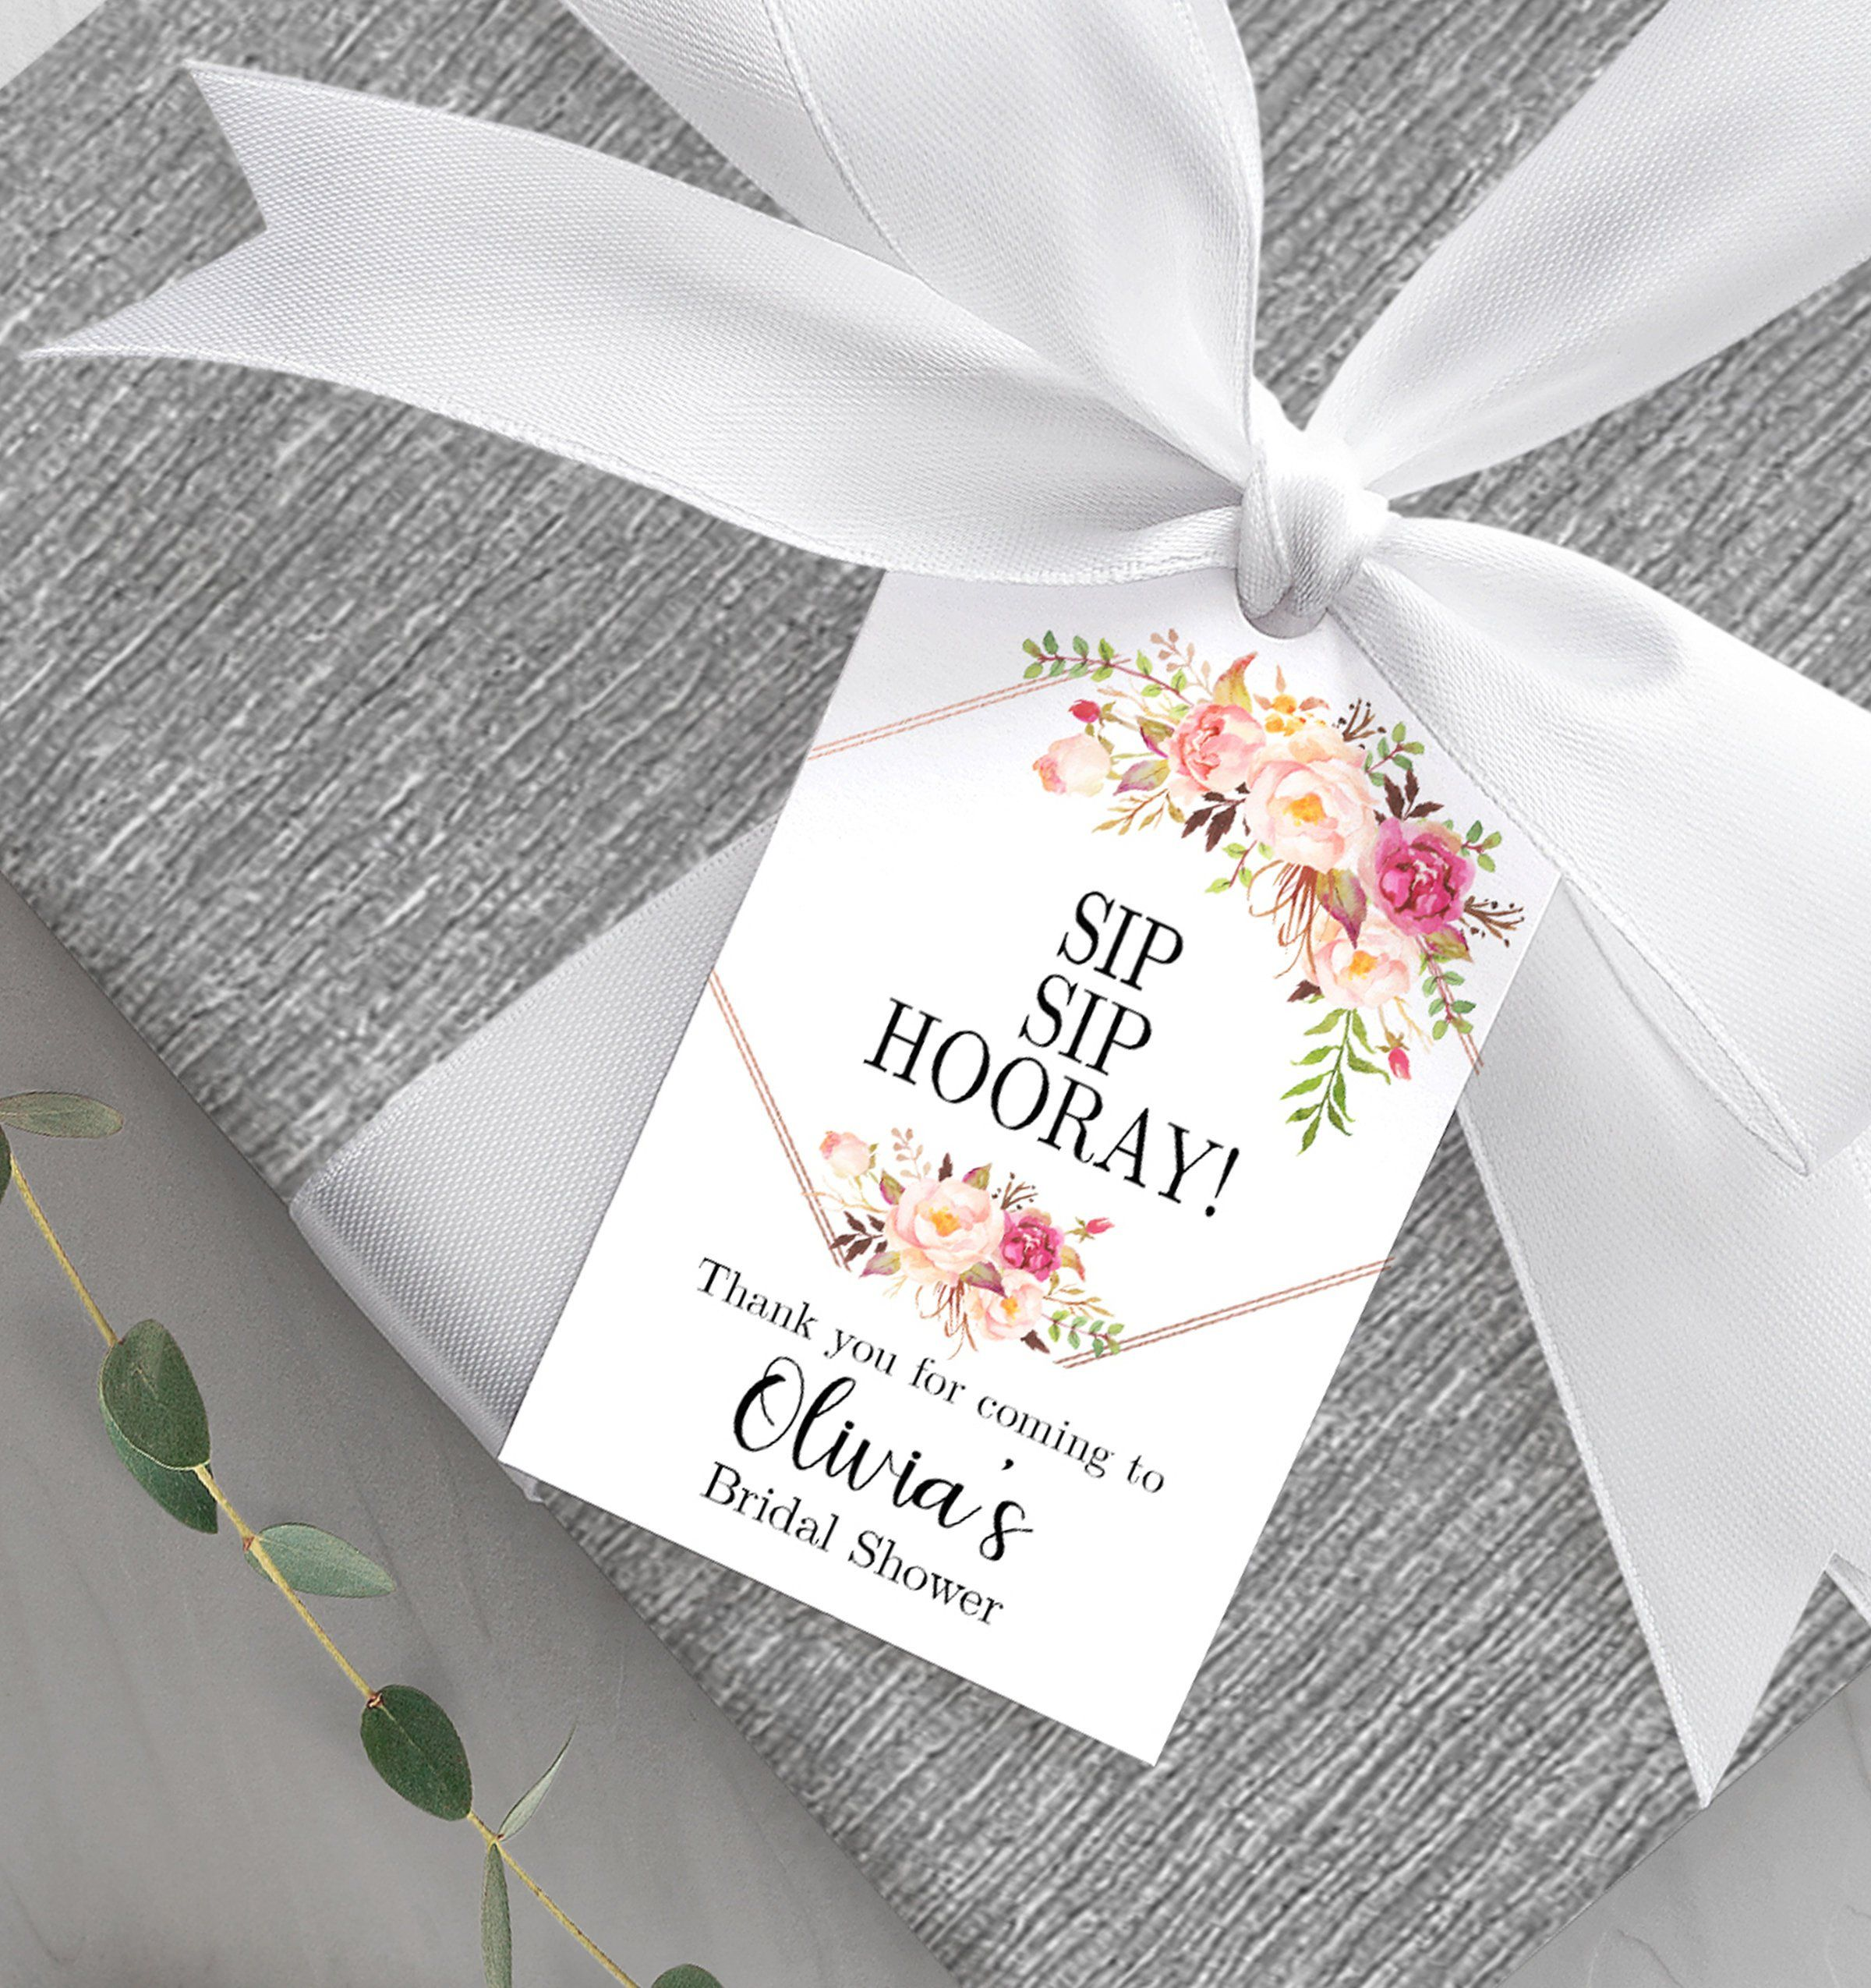 Editable Favour Tag template calligraphy bonbonniere tags tags printable gift tags Cassandra wedding thank you wedding favour tag